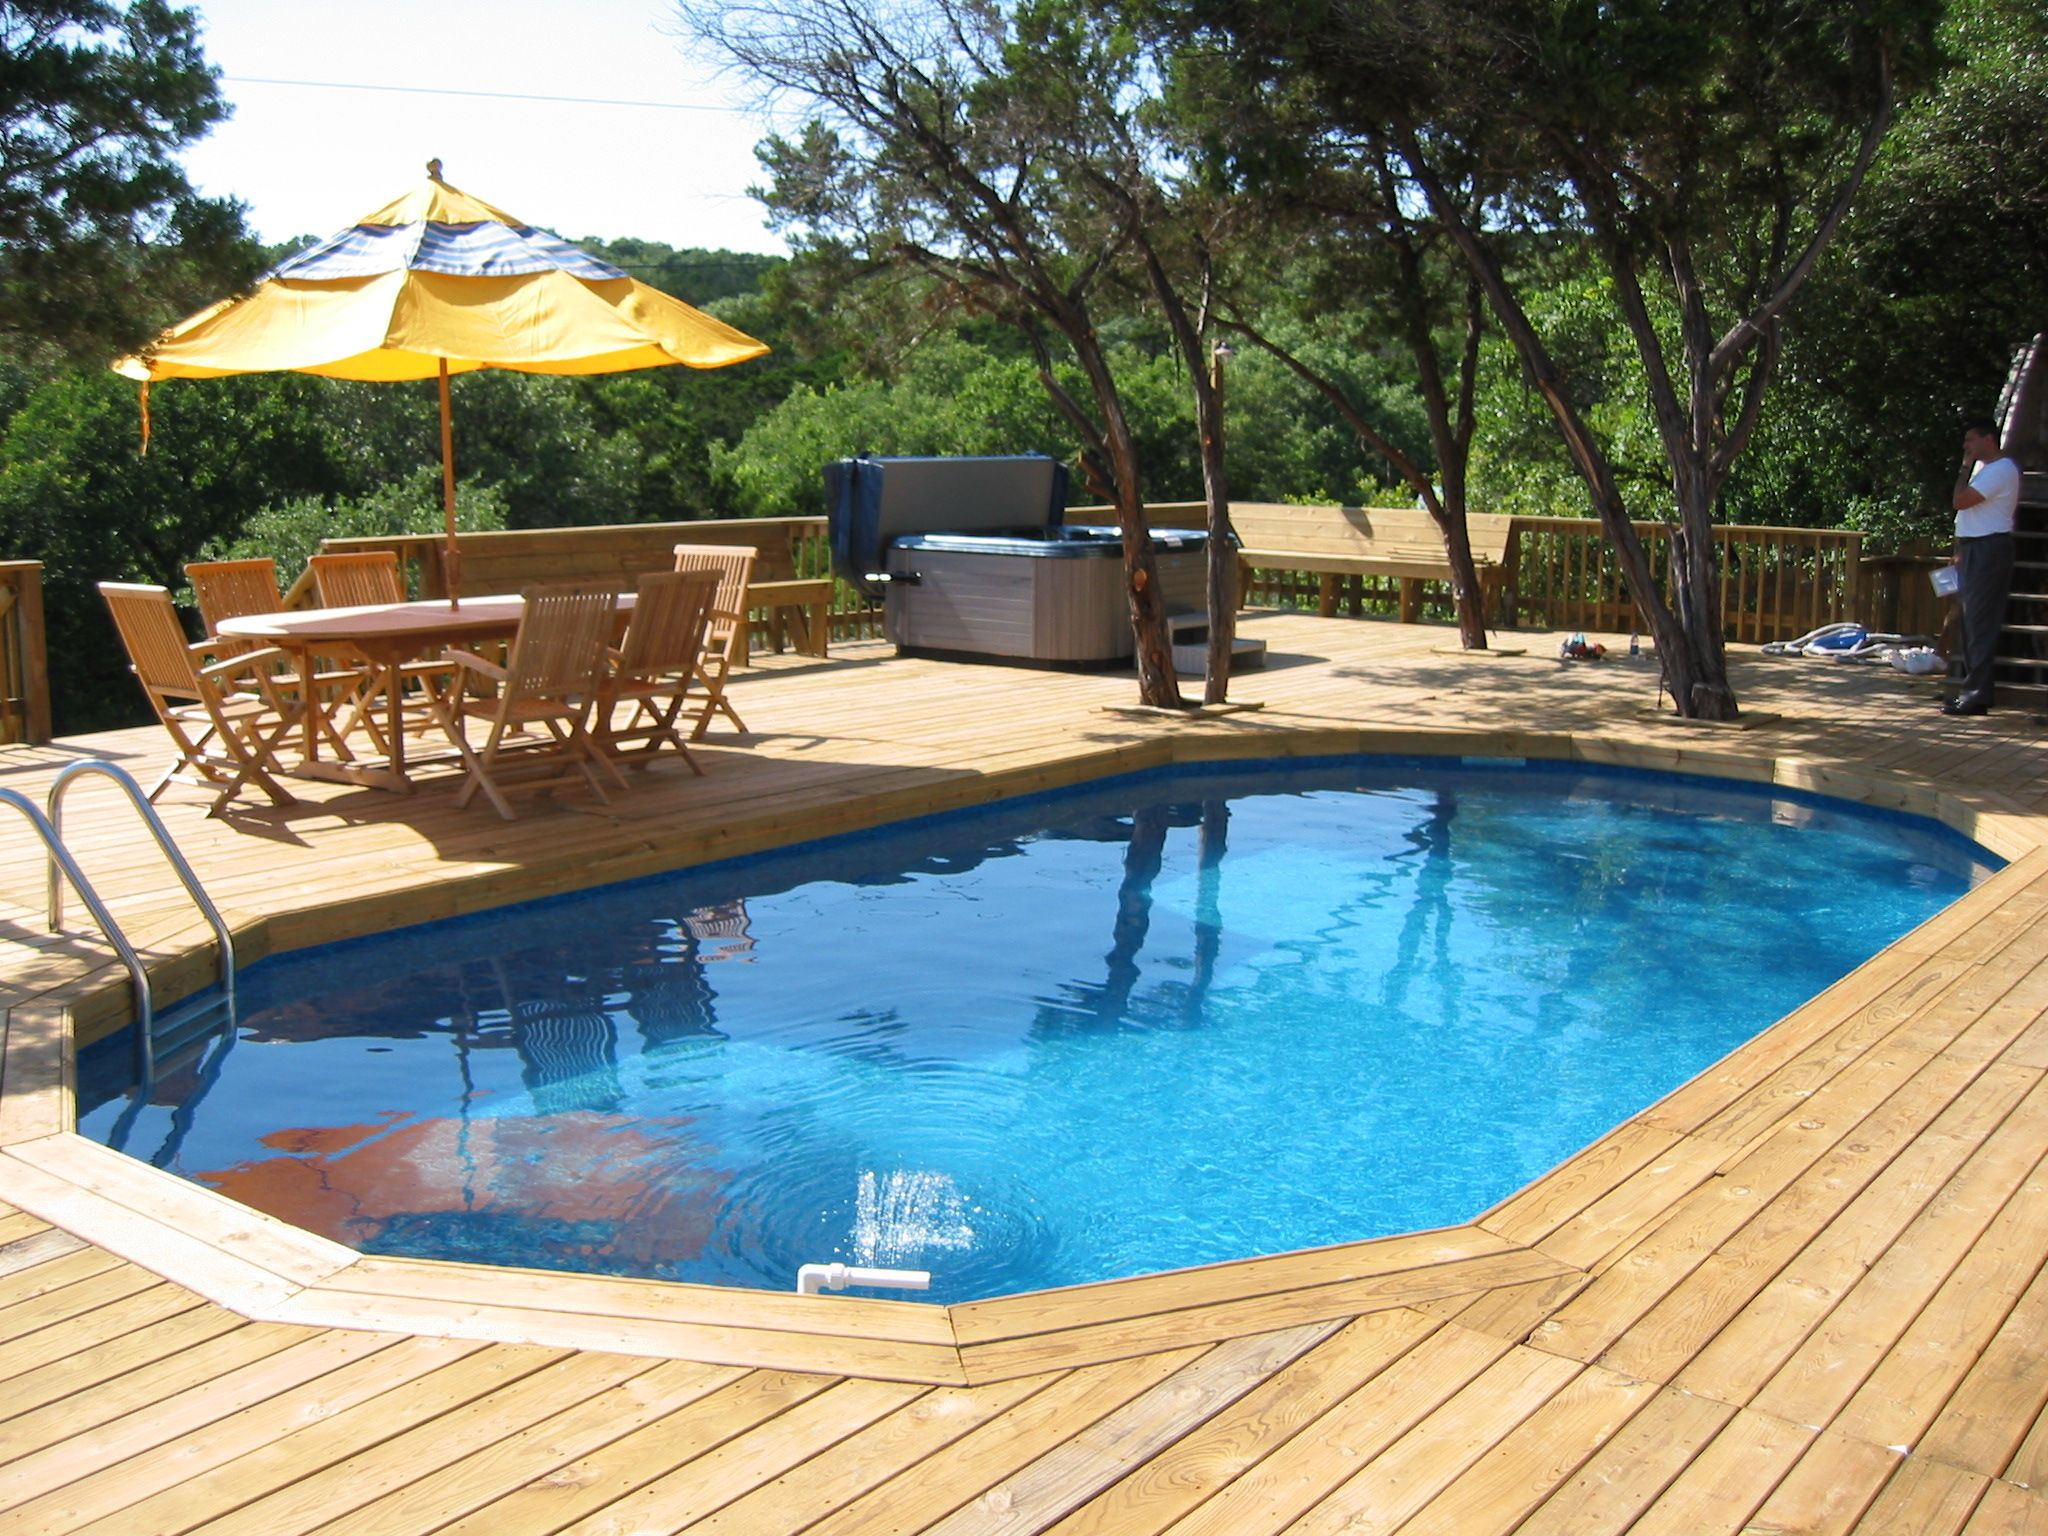 17 Best images about backyard on Pinterest | Gardens, Wood stain and Deck  cost